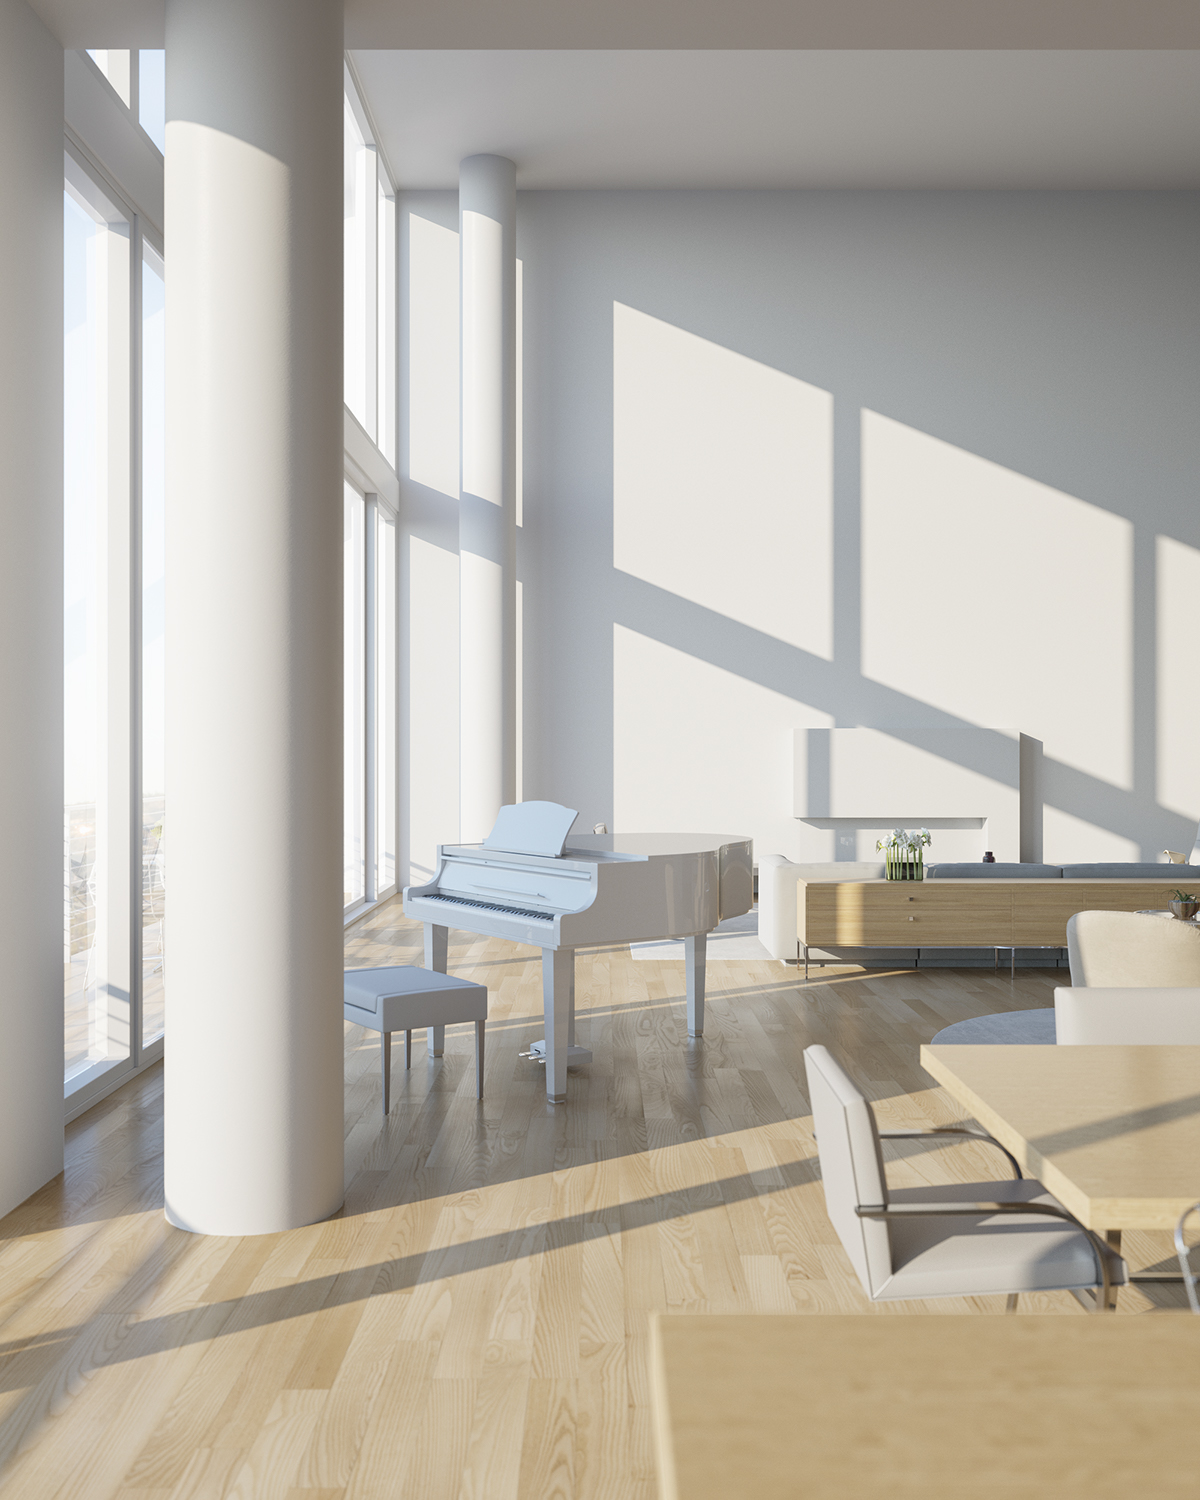 penthouse interior rendering beverly hills ca on behance